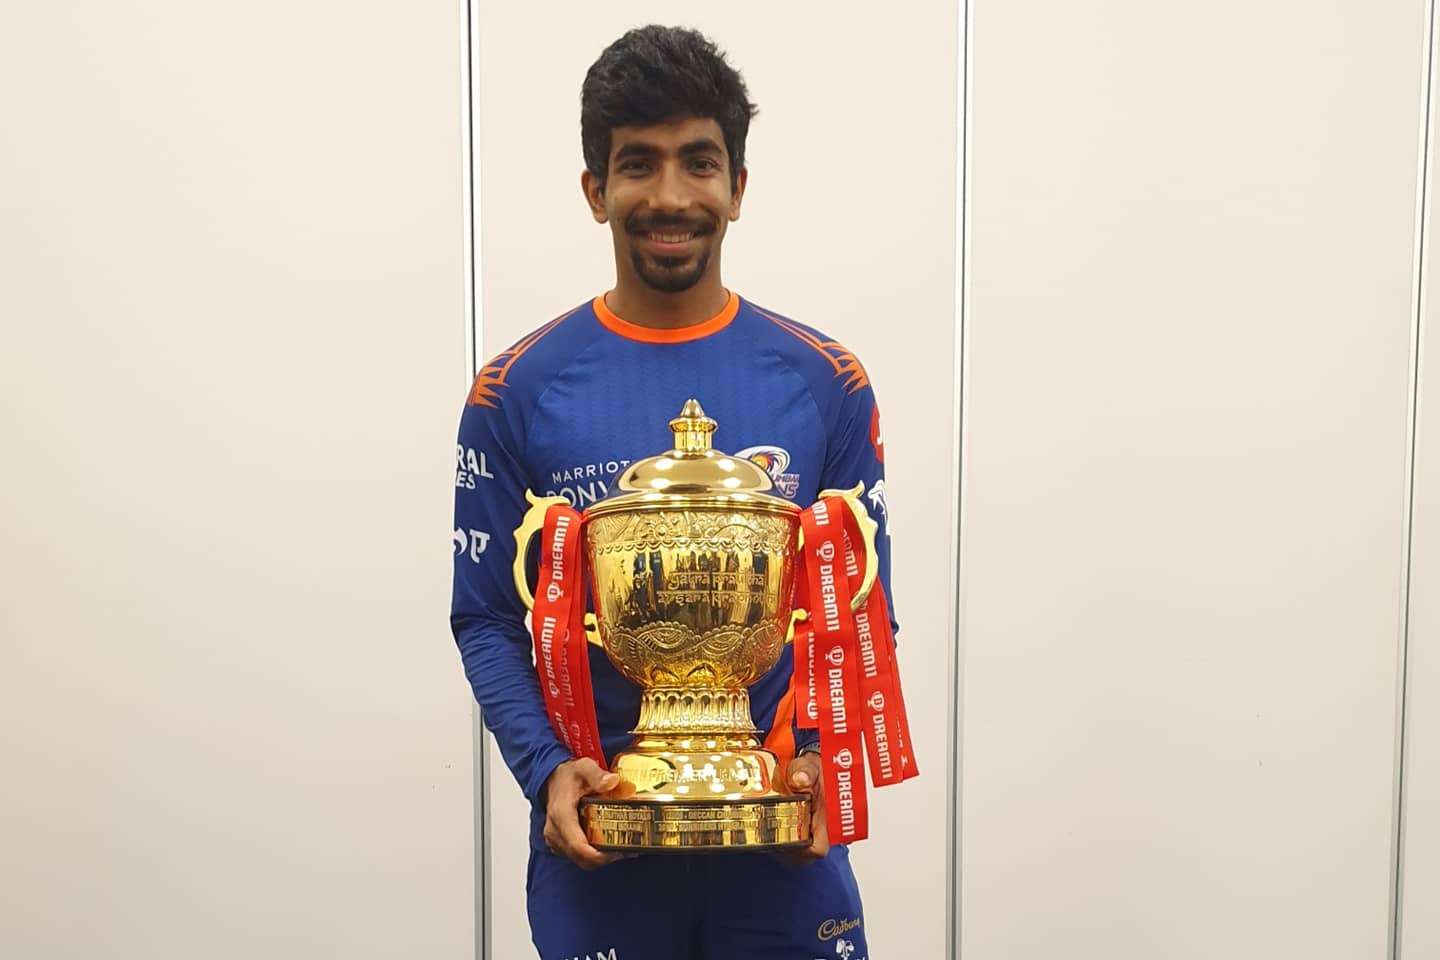 Jasprit Bumrah finished the season with 27 wickets in IPL 2020; highest by an Indian bowler in the history of IPL || Image Source: BCCI